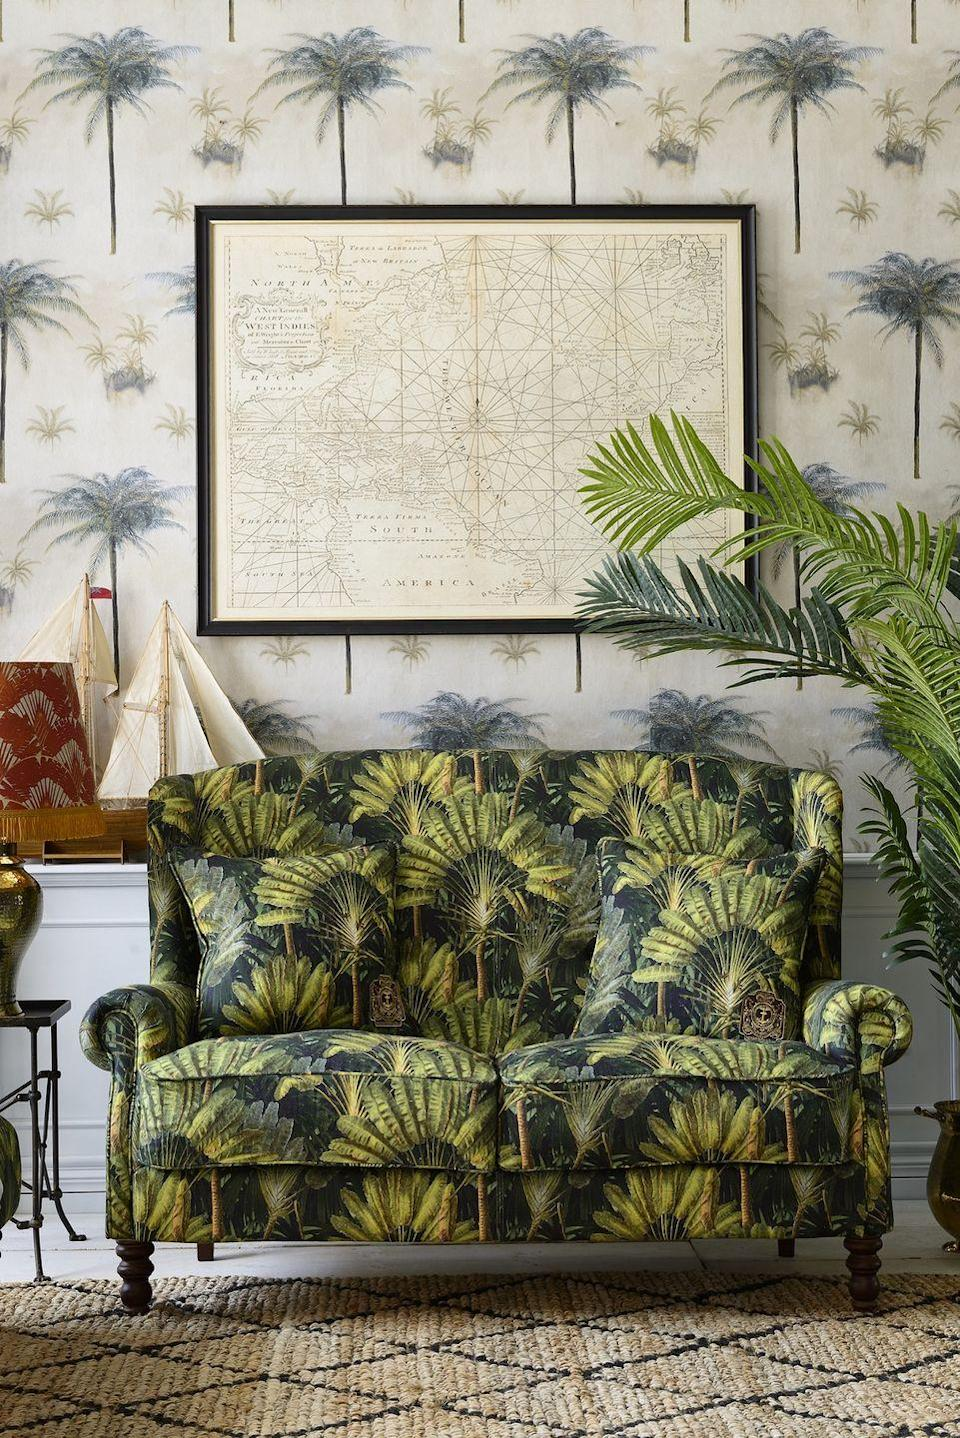 """<p>Bring relaxed holiday vibes to your living room with a wallpaper design which reflects soft tones and tropical elements, like this Caribbean-inspired large scale painted palm tree wallpaper. Here, dark contours of the palm stems blend with pastel greens and sandy shades of gold, in a hazy, calming composition.</p><p>Pictured: CAYO LARGO Wallpaper, <a href=""""https://mindtheg.com/uk/products/stories/the-tropical-cottage/cayo-largo.html"""" rel=""""nofollow noopener"""" target=""""_blank"""" data-ylk=""""slk:MINDTHEGAP"""" class=""""link rapid-noclick-resp"""">MINDTHEGAP</a></p>"""